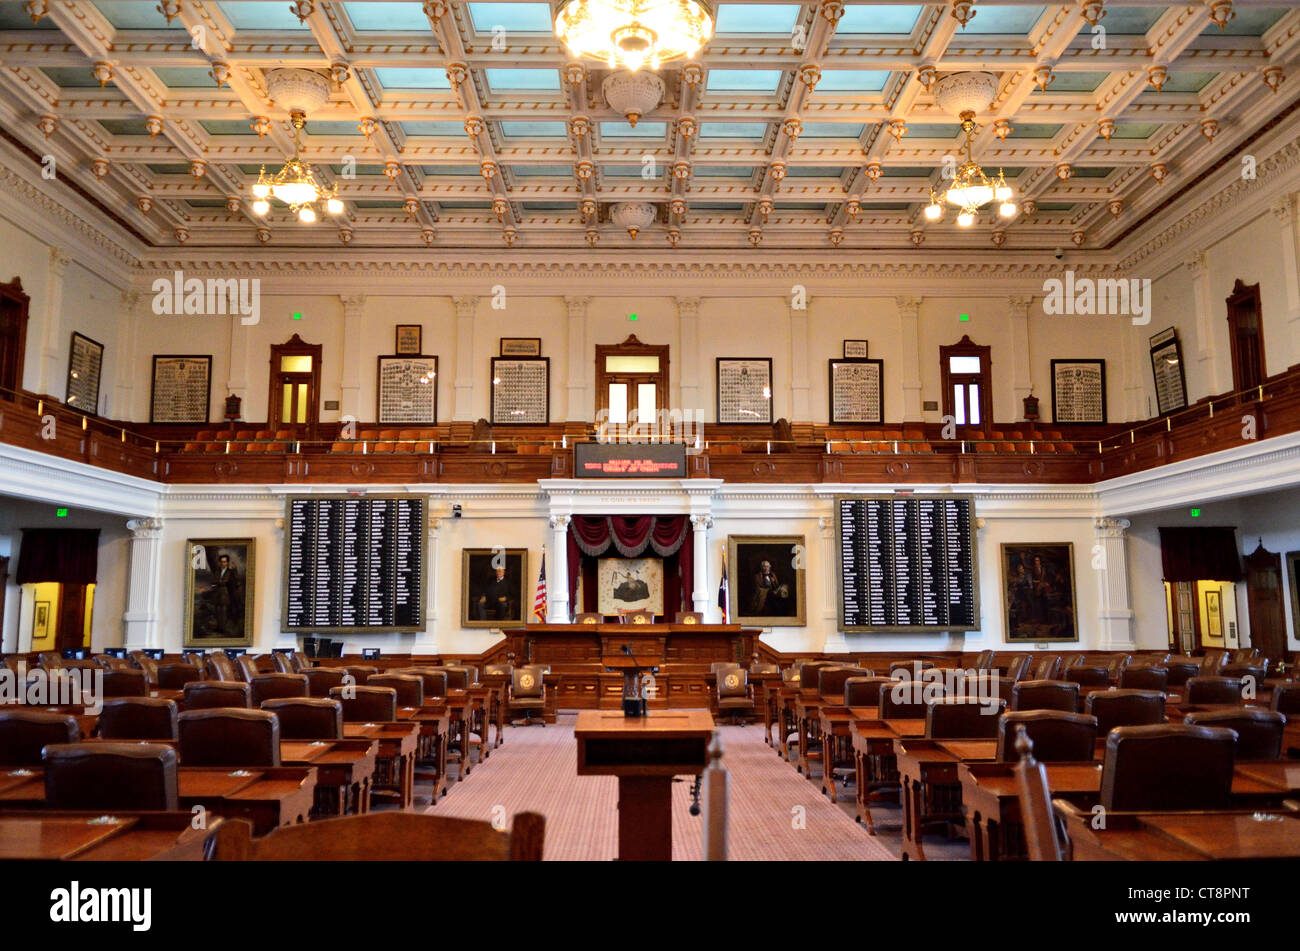 Interior Of Texas House Of Representatives In The State Capital Building.  Austin, Texas, USA.